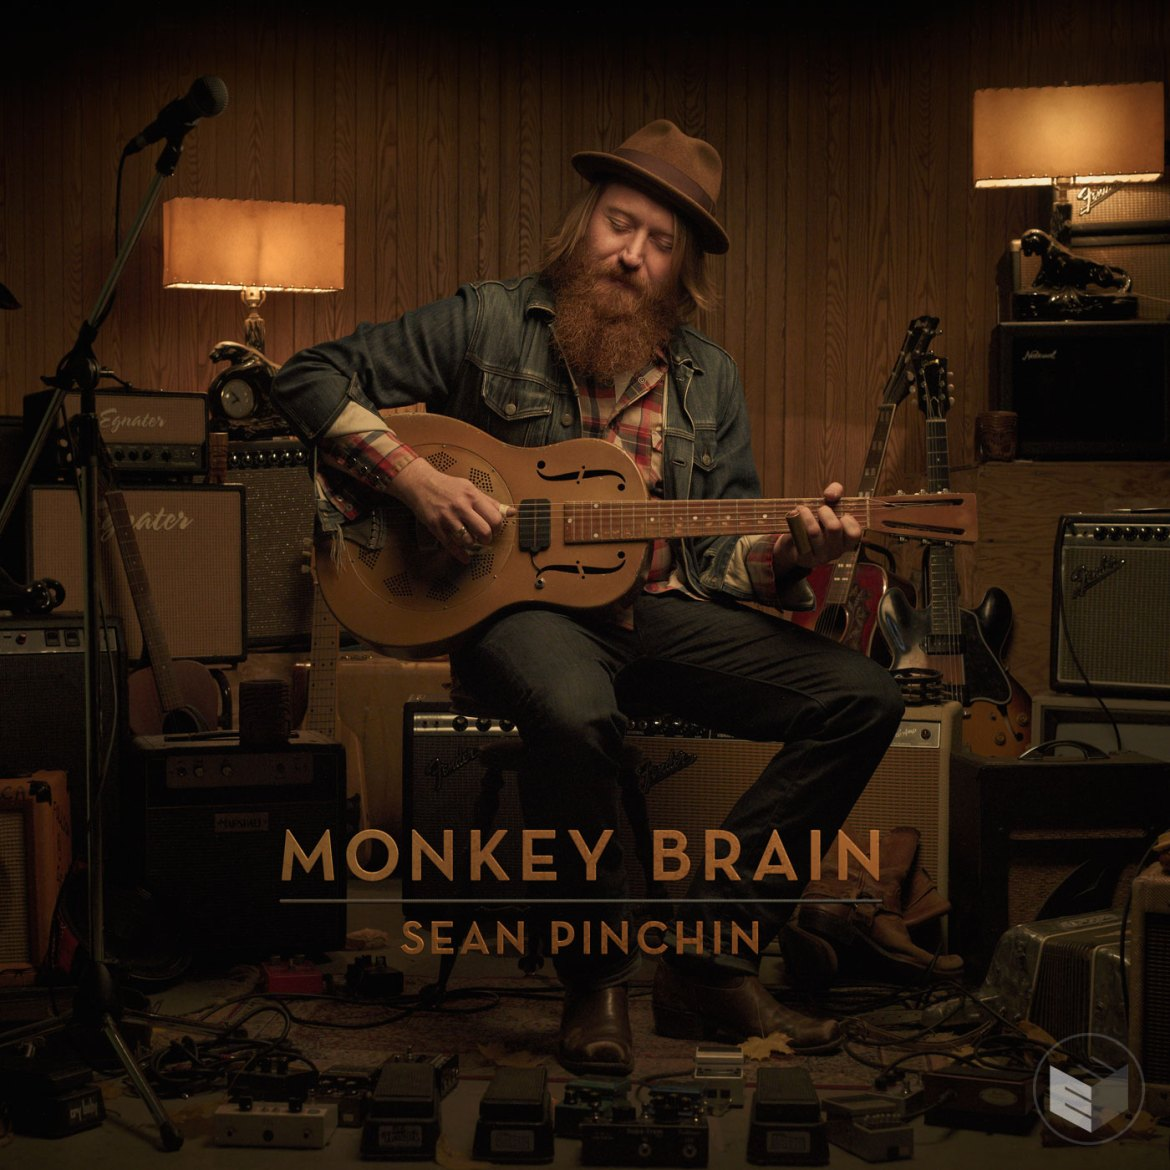 SEAN PINCHIN'S MONKEY BRAIN COVER